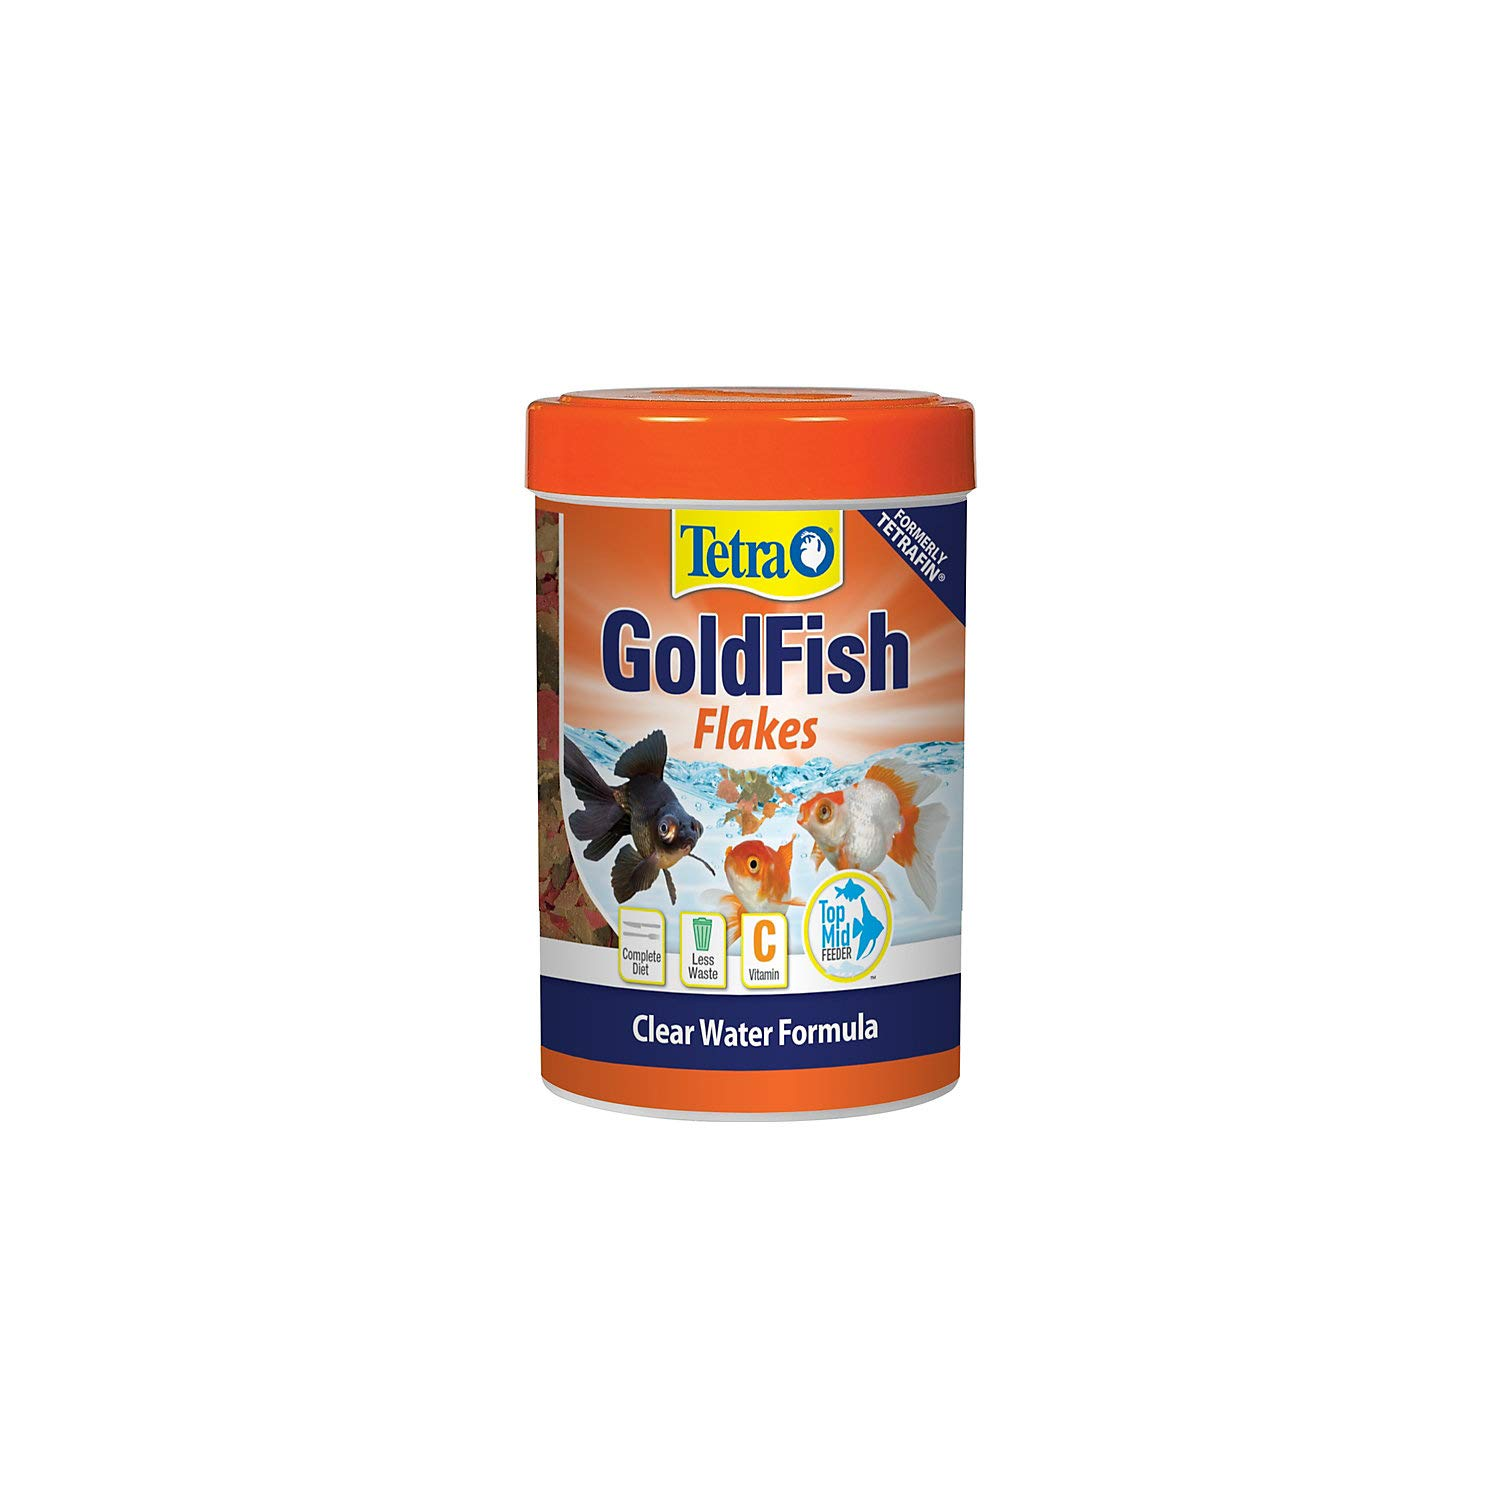 TetraFin Goldfish Flakes Fish Food, 2.20-lb bucket - Chewy.com